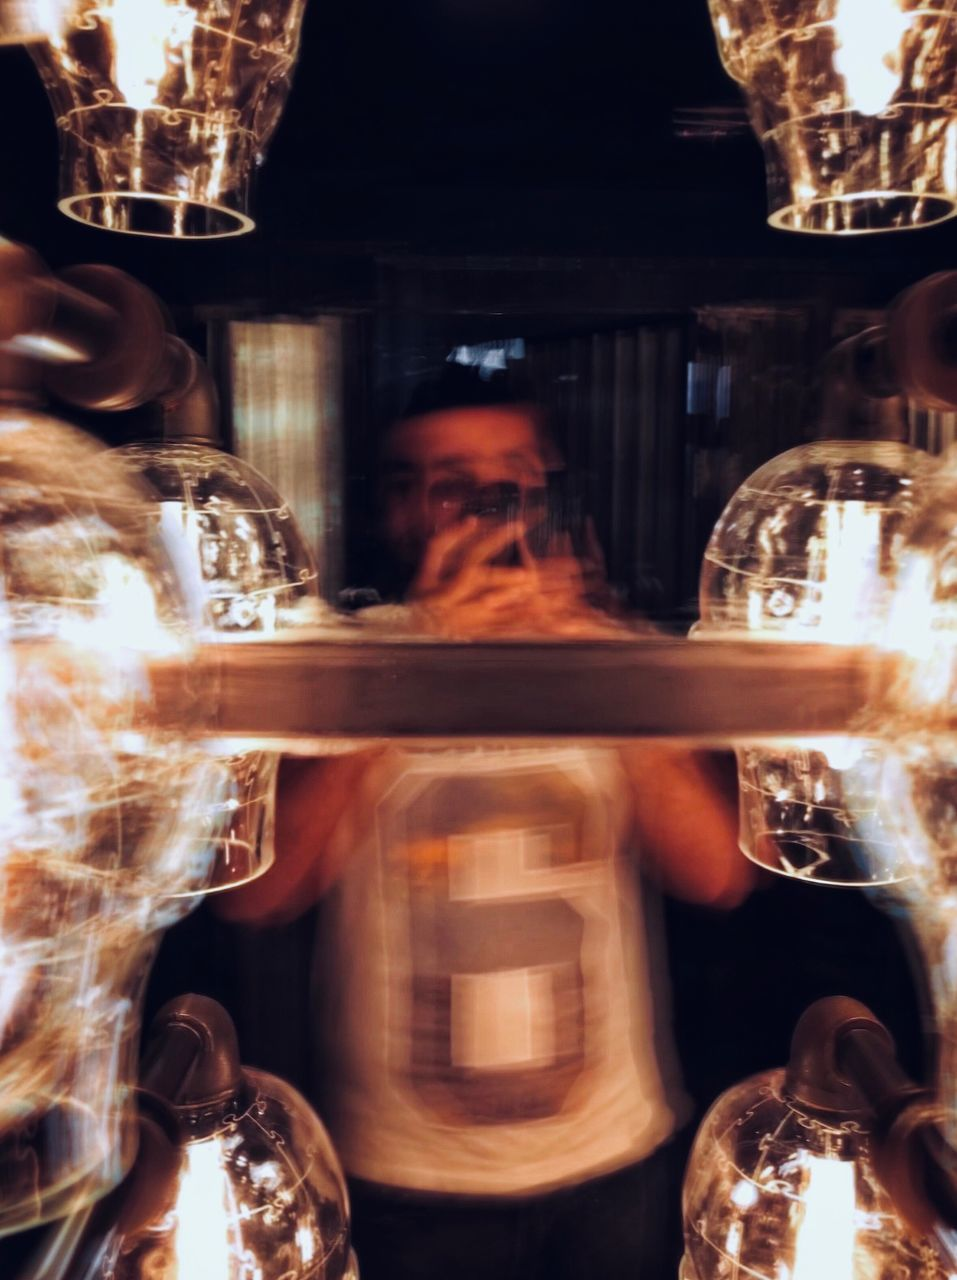 REFLECTION OF MAN IN GLASS OF ILLUMINATED MIRROR